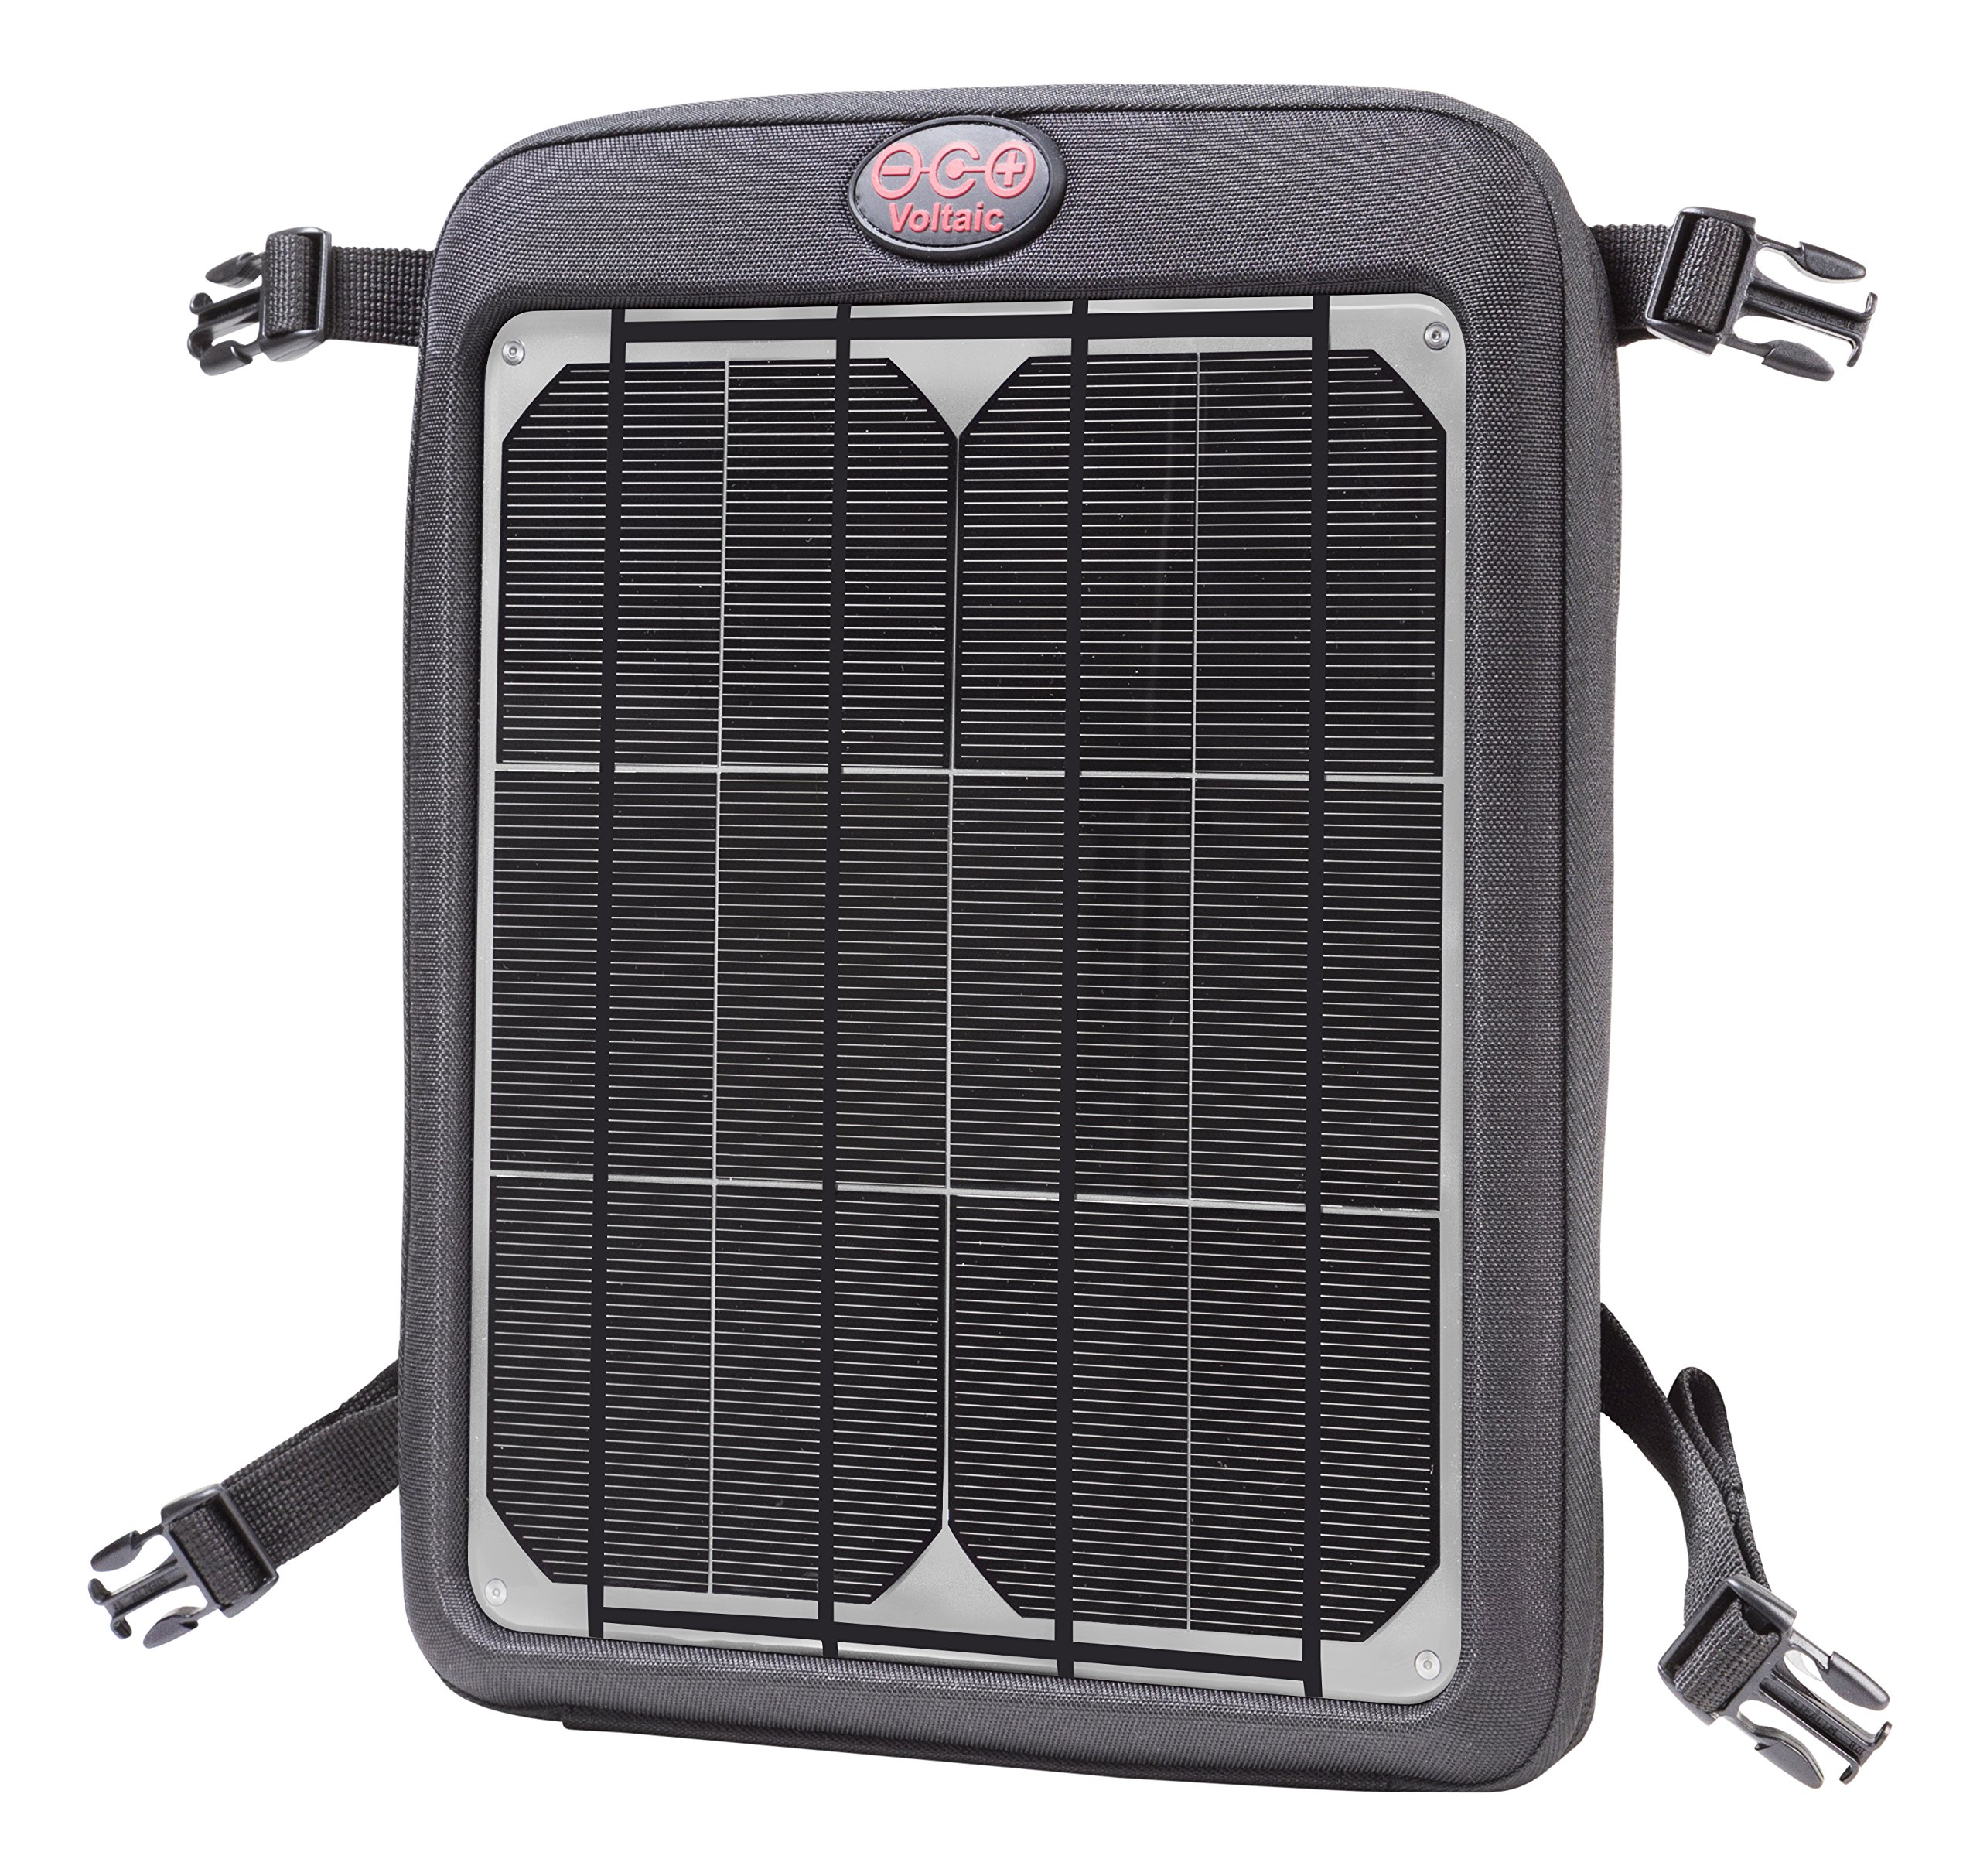 Votlaic Systems Fuse 9W Portable Solar Charger with Battery Pack (Dual USB, 12,000mAh) - Silver by Voltaic